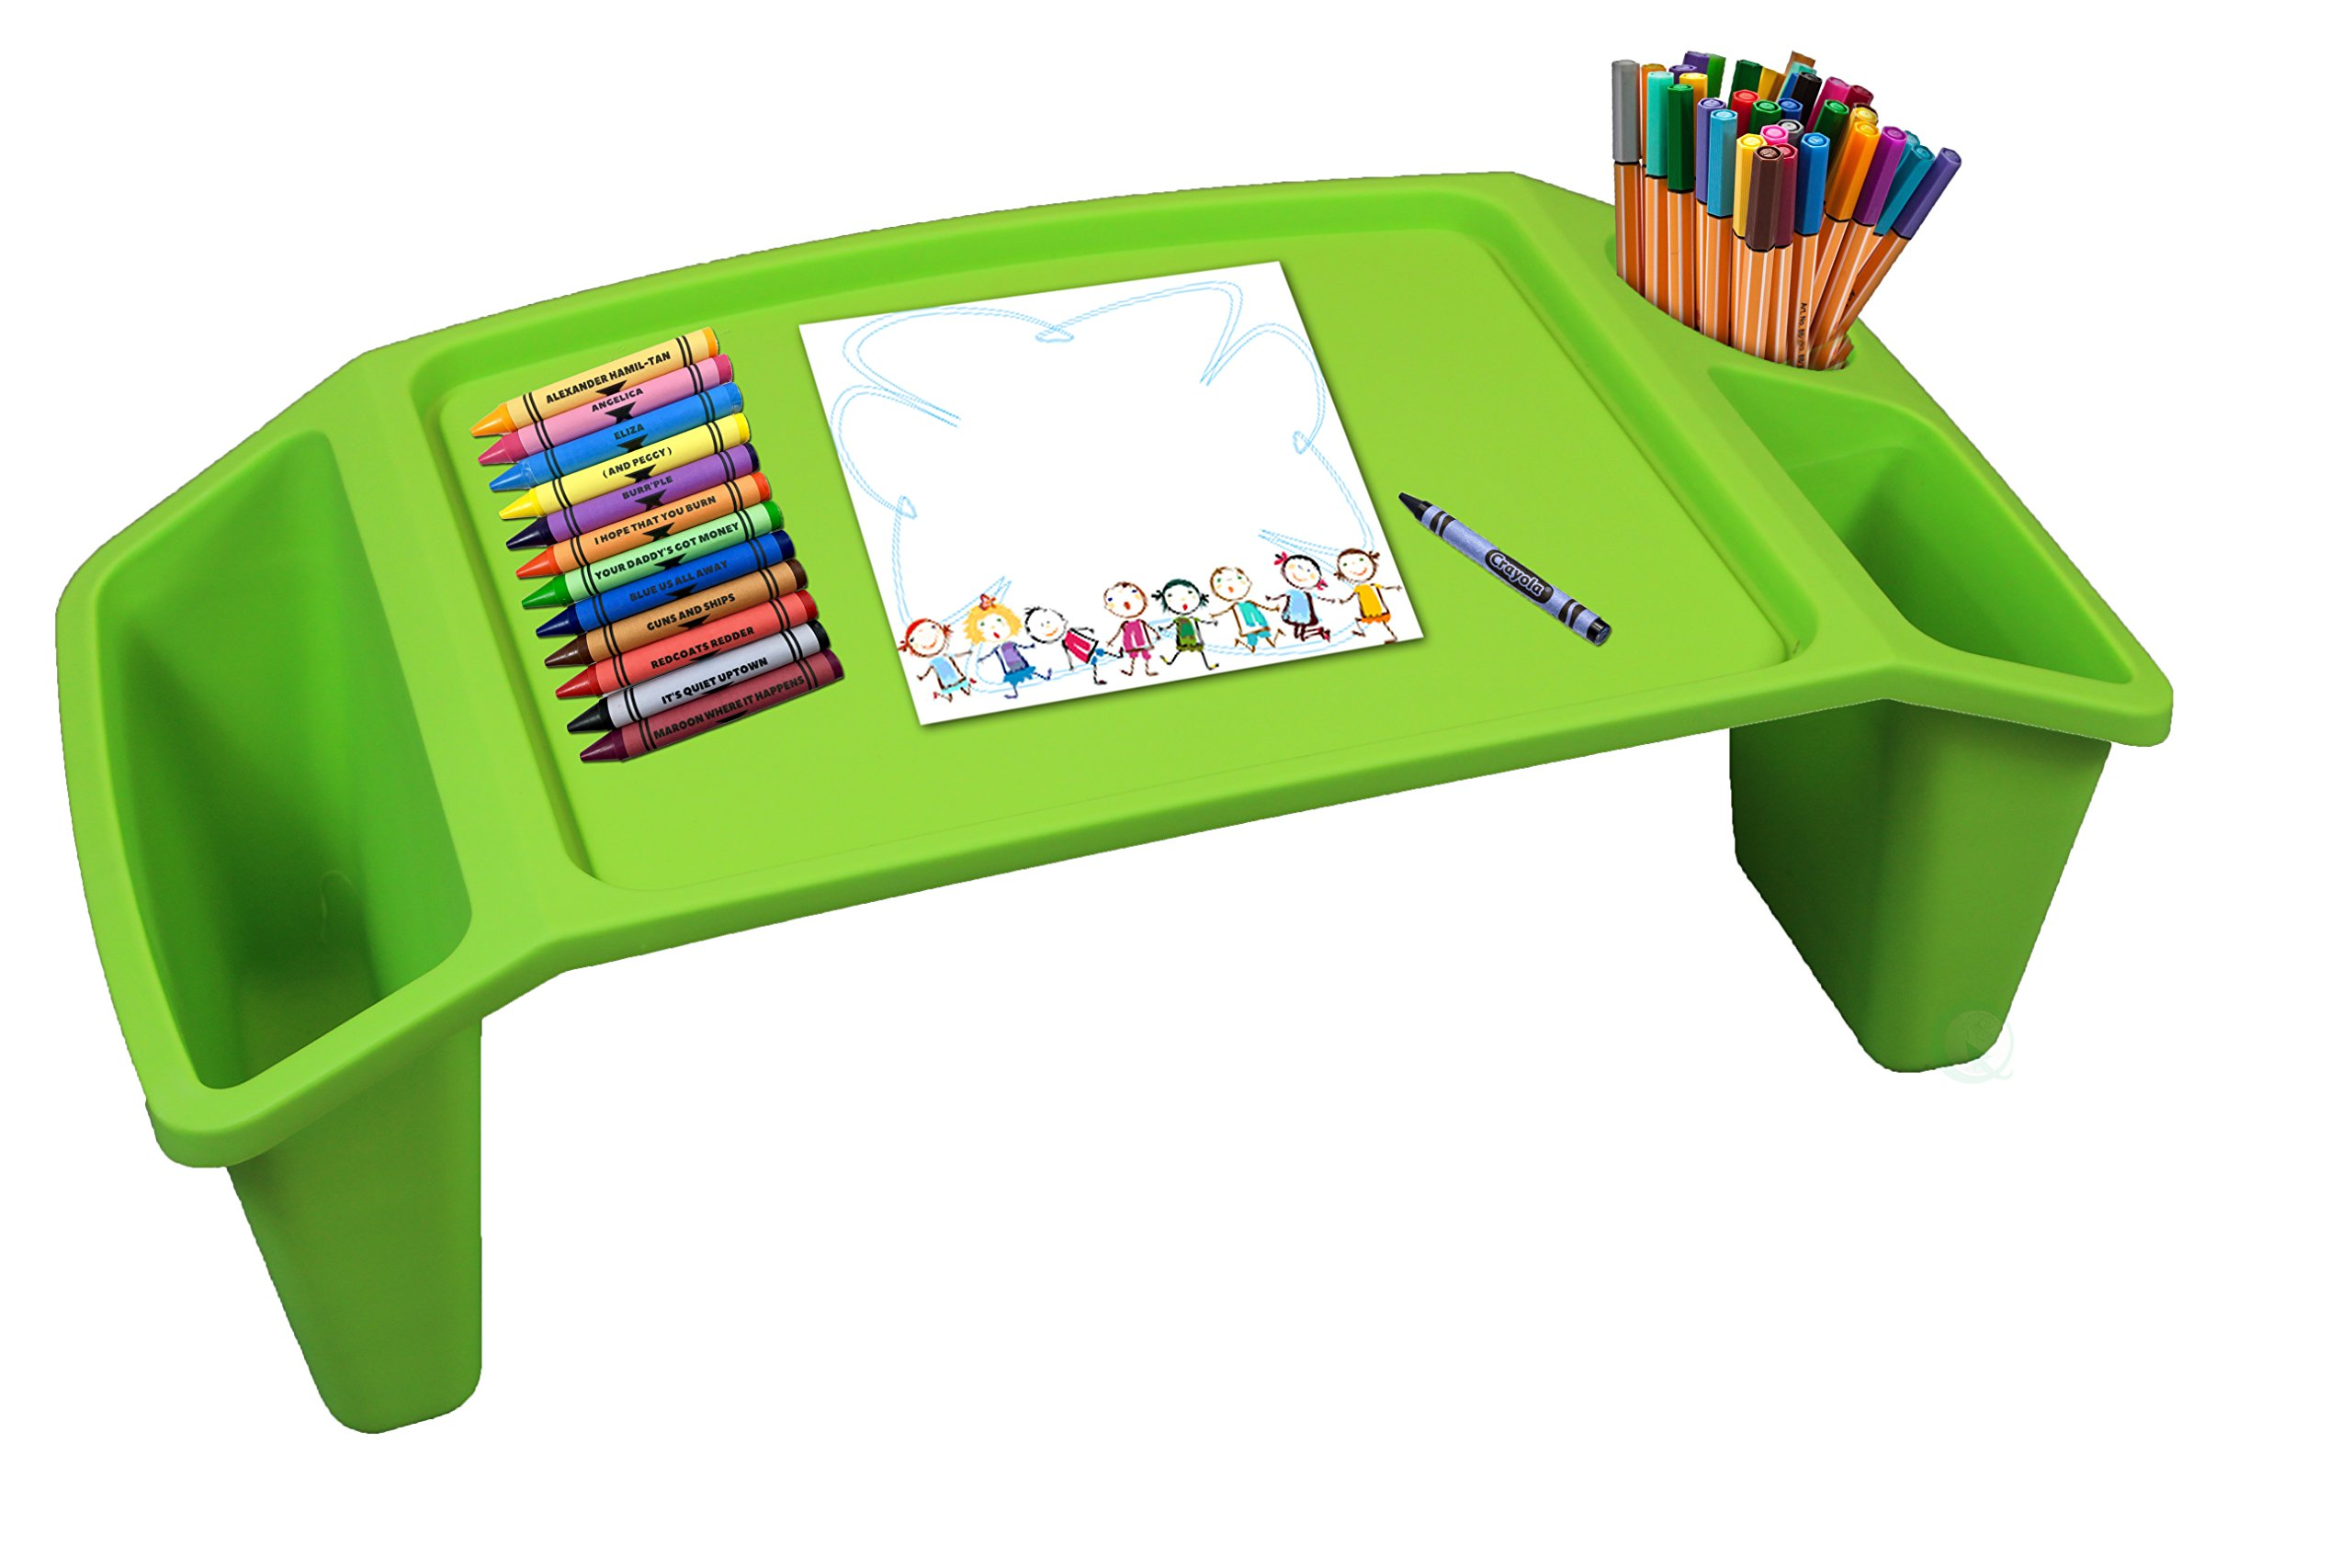 Baiscwise Kids Lap Desk Tray, Portable Activity Table (Set of 12, Green)